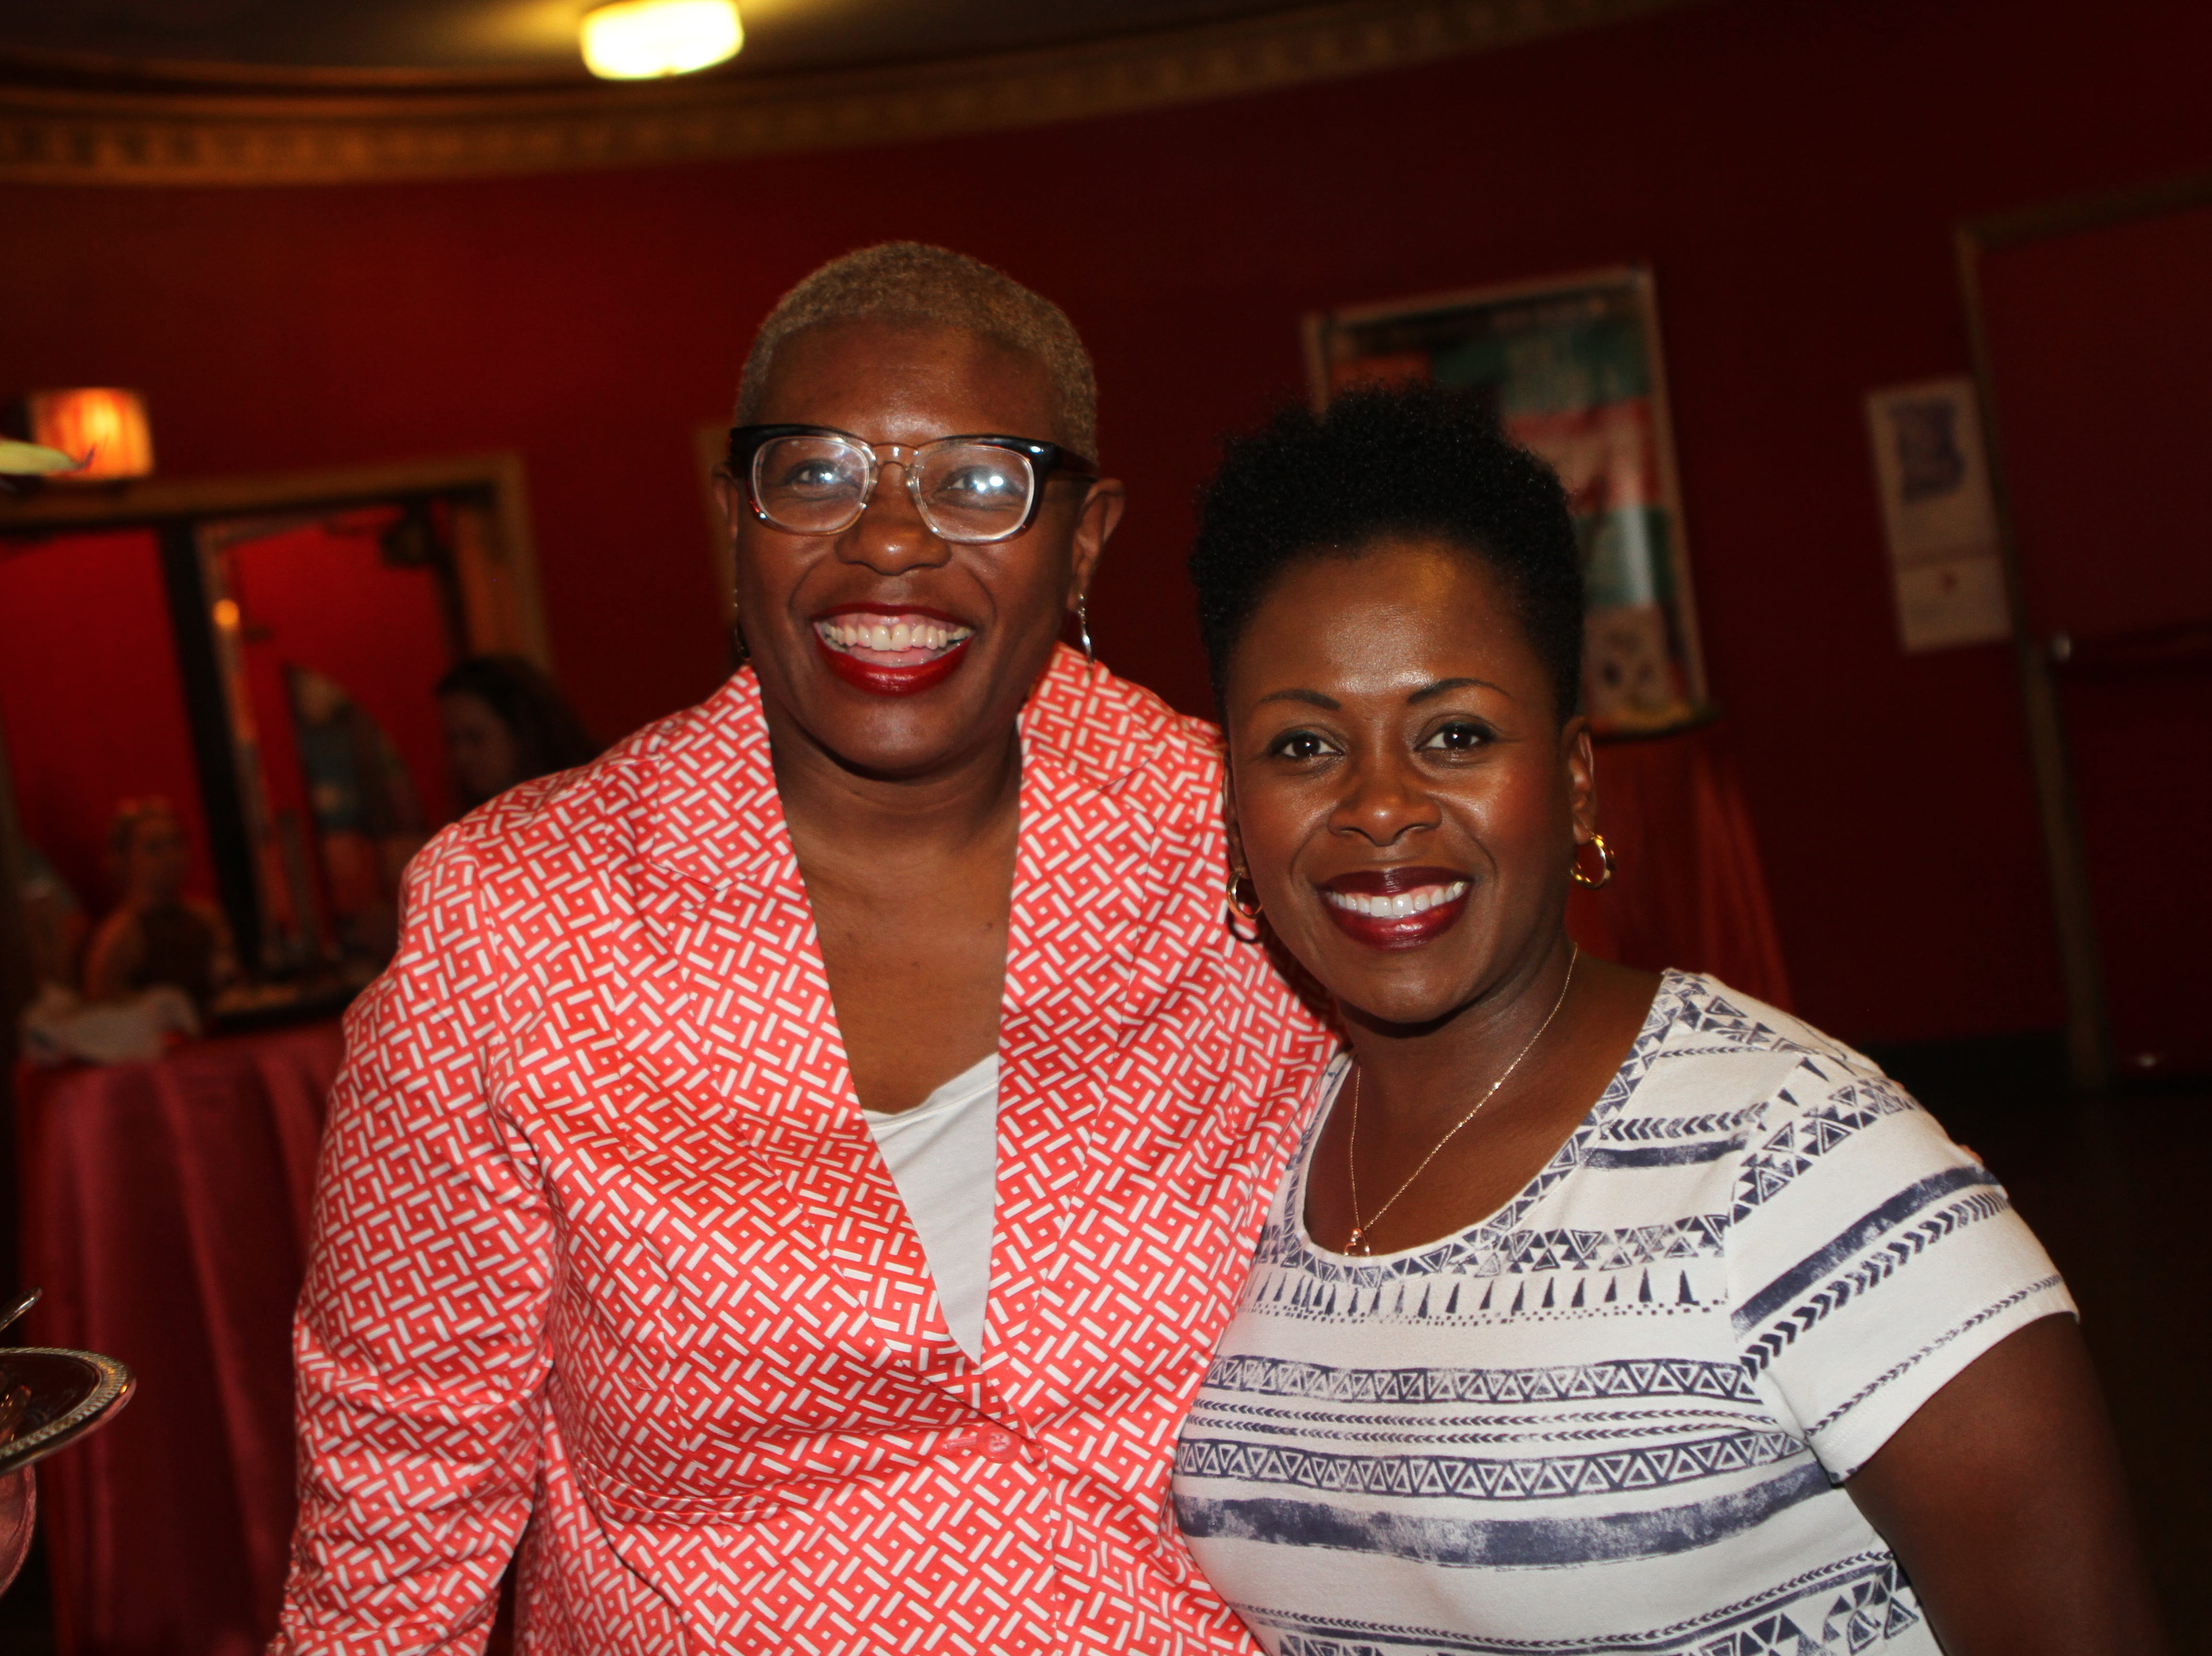 Rashidah Leverett and Kim Wiggins at the Roxy Regional Theatre for the United Way 2018 campaign fundraising event Thursday night.